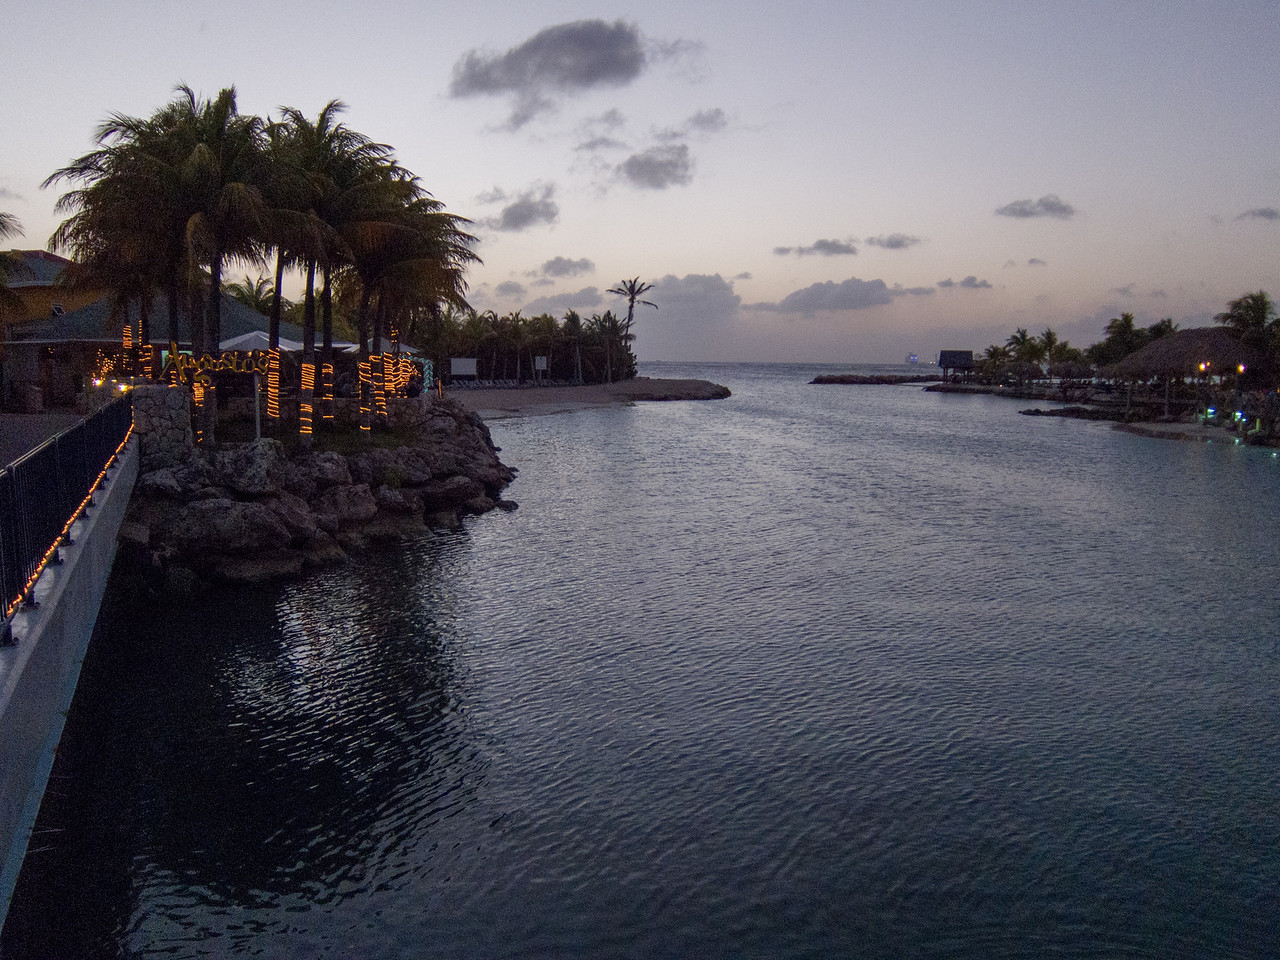 Augusto's Restaurant (left), Lions Dive & Beach Resort Curaçao (right) at Dusk - February 2013